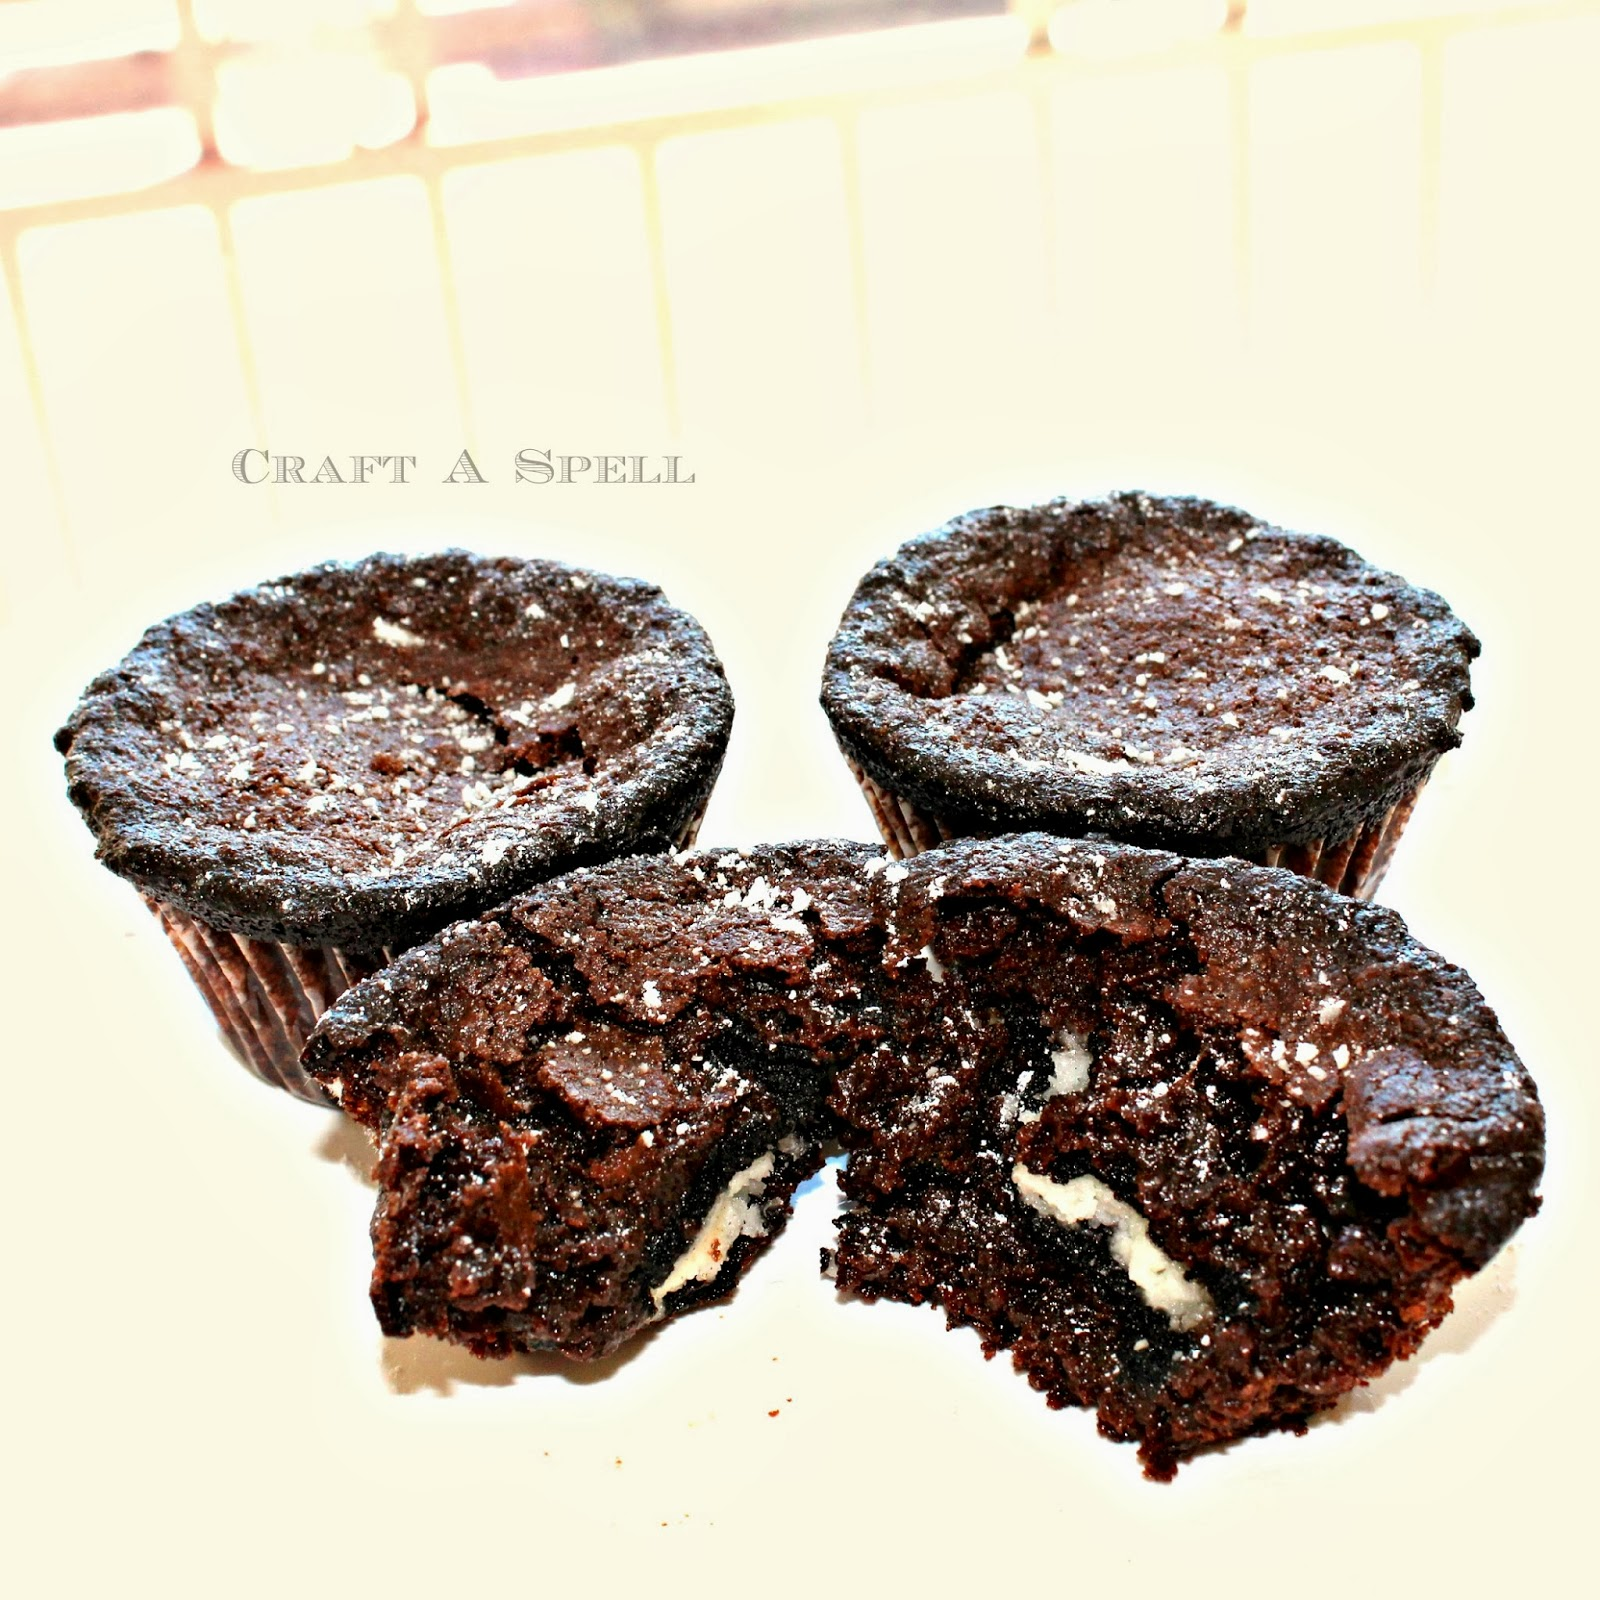 brownies essay And each time i compared the brownies to my memory, they failed to measure up this classic brownie recipe was defeating me my stubbornness kept me trying to make it work, until one day, something prompted me to try a different recipe.